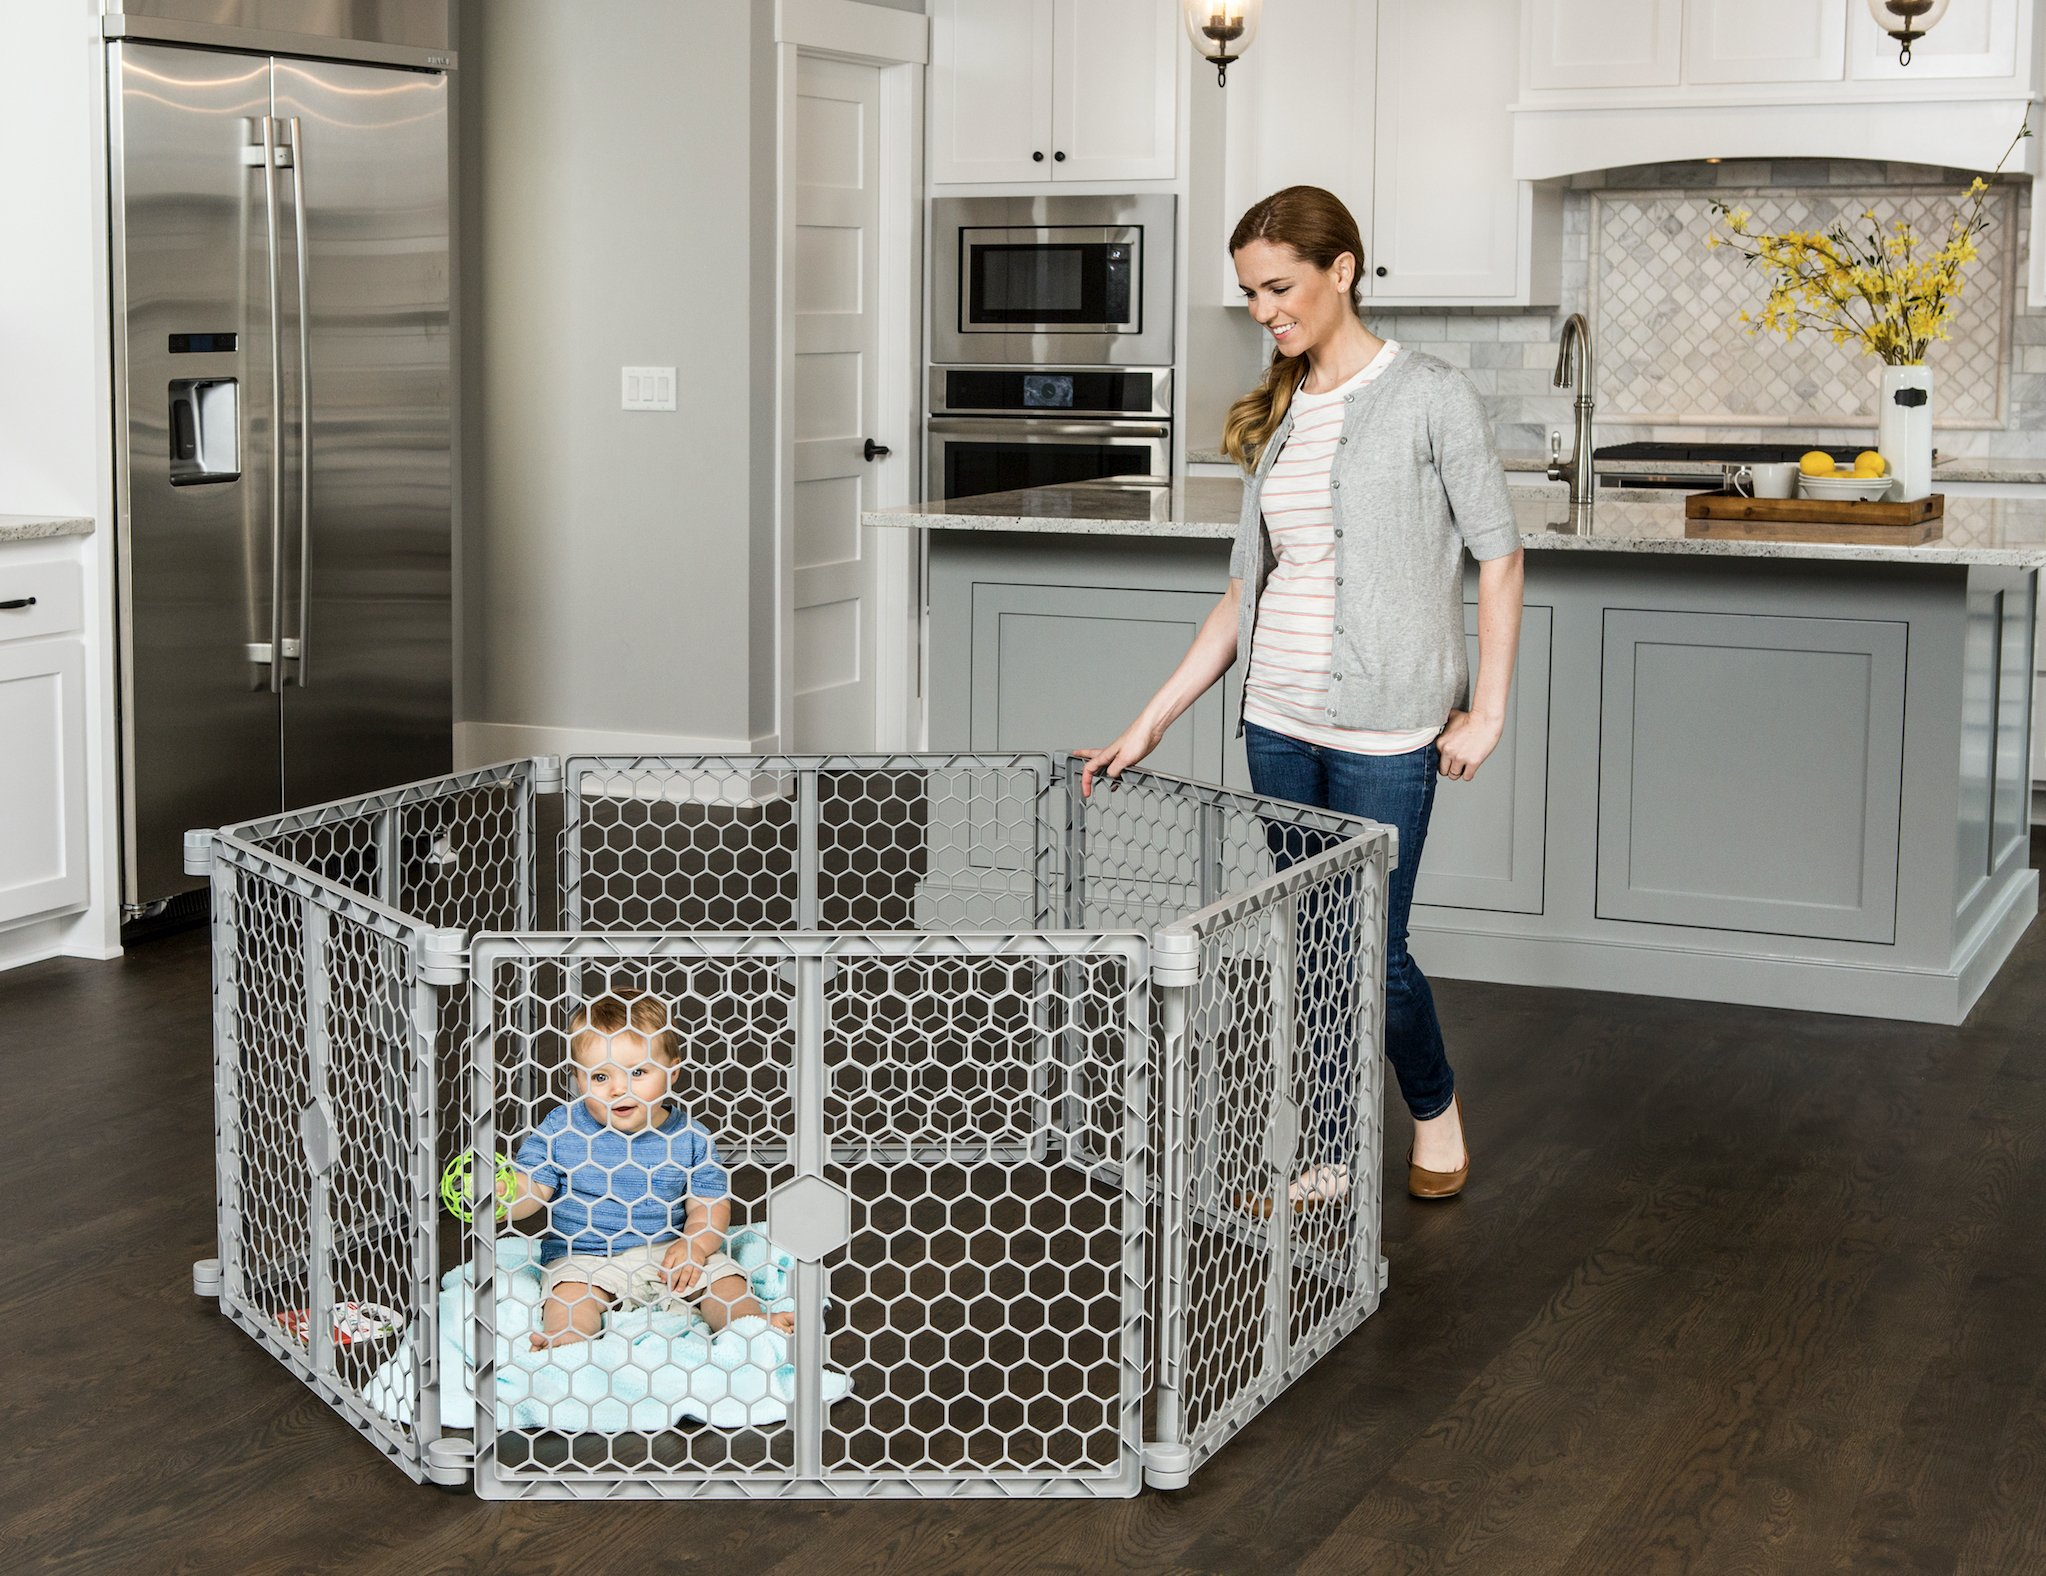 Regalo Versatile Play Space 192-Inch Plastic Super Wide Portable Baby Gate and Play Yard, 4-In-1, Bonus Kit, Includes 4 Pack of Wall Mounts, Indoor and Outdoor Play Space, Cool Gray by Regalo (Image #1)